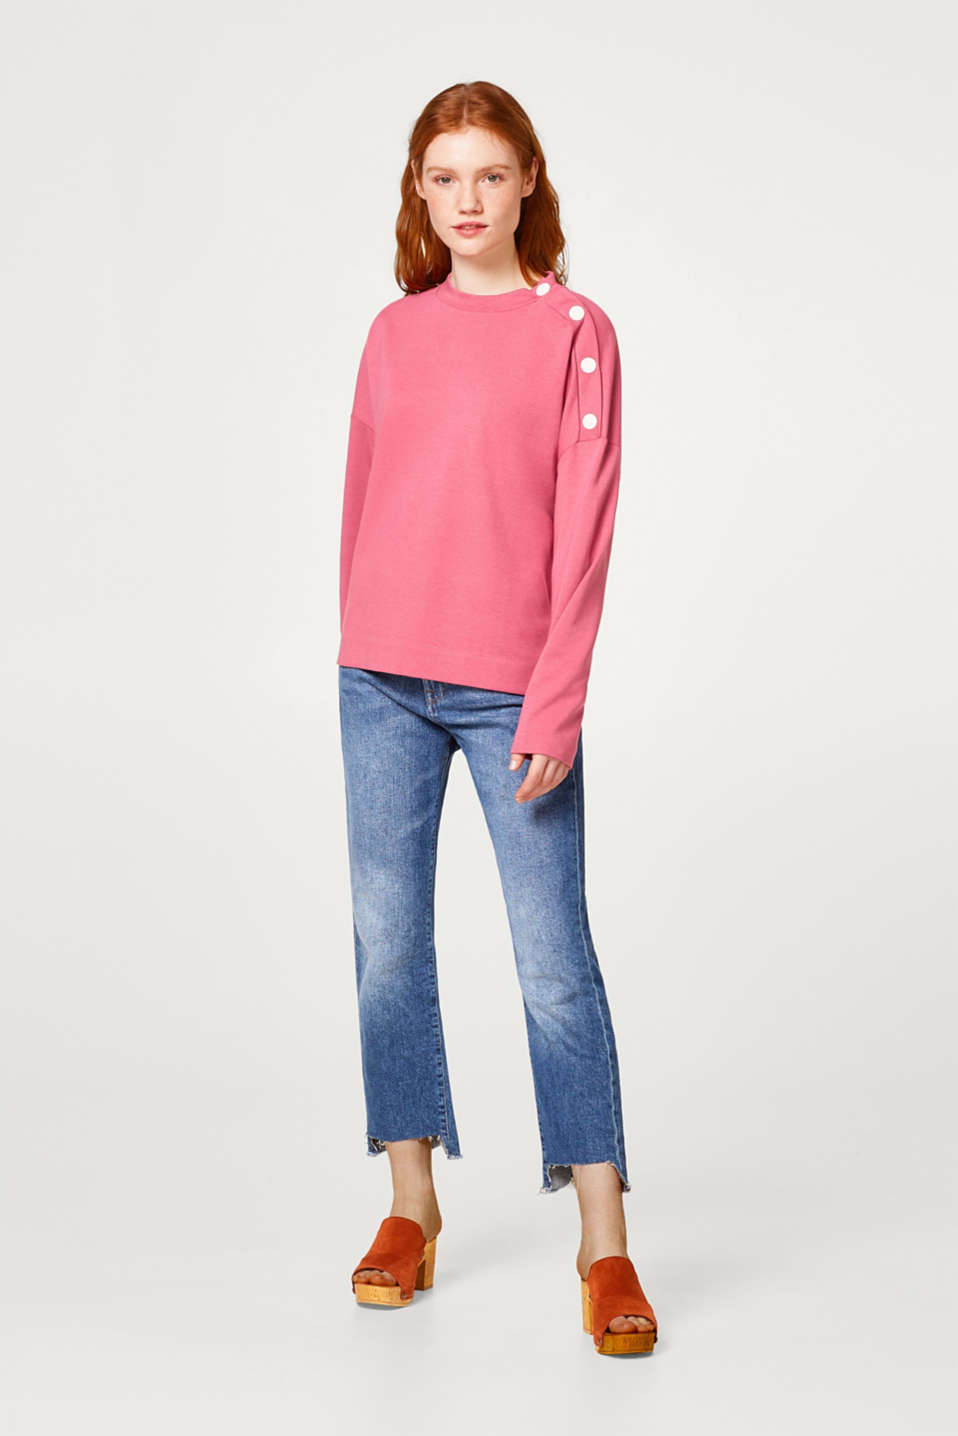 Sweatshirt with a logo print or plain coloured